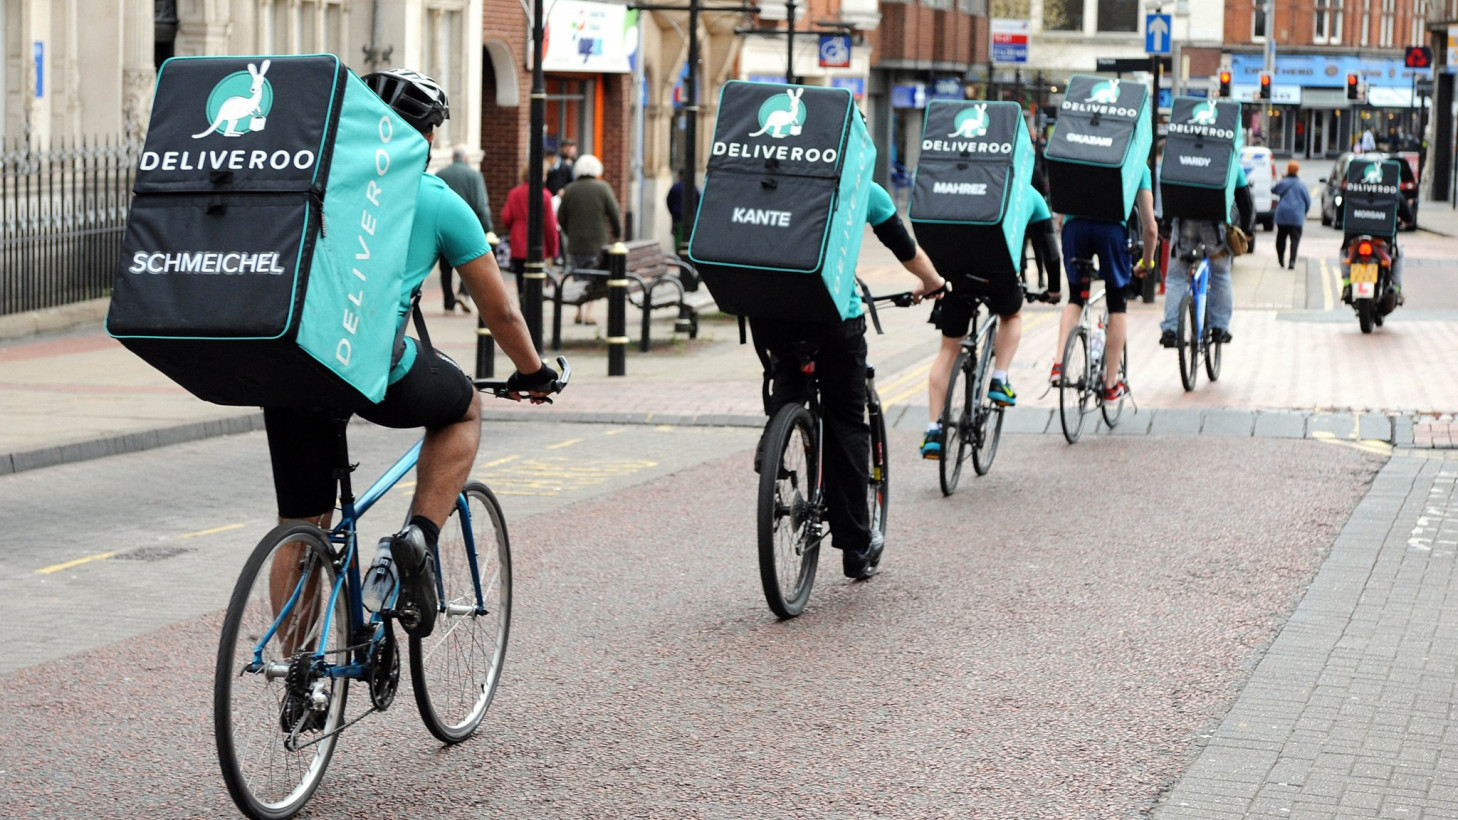 Here's how Deliveroo plans to just eat its competitors